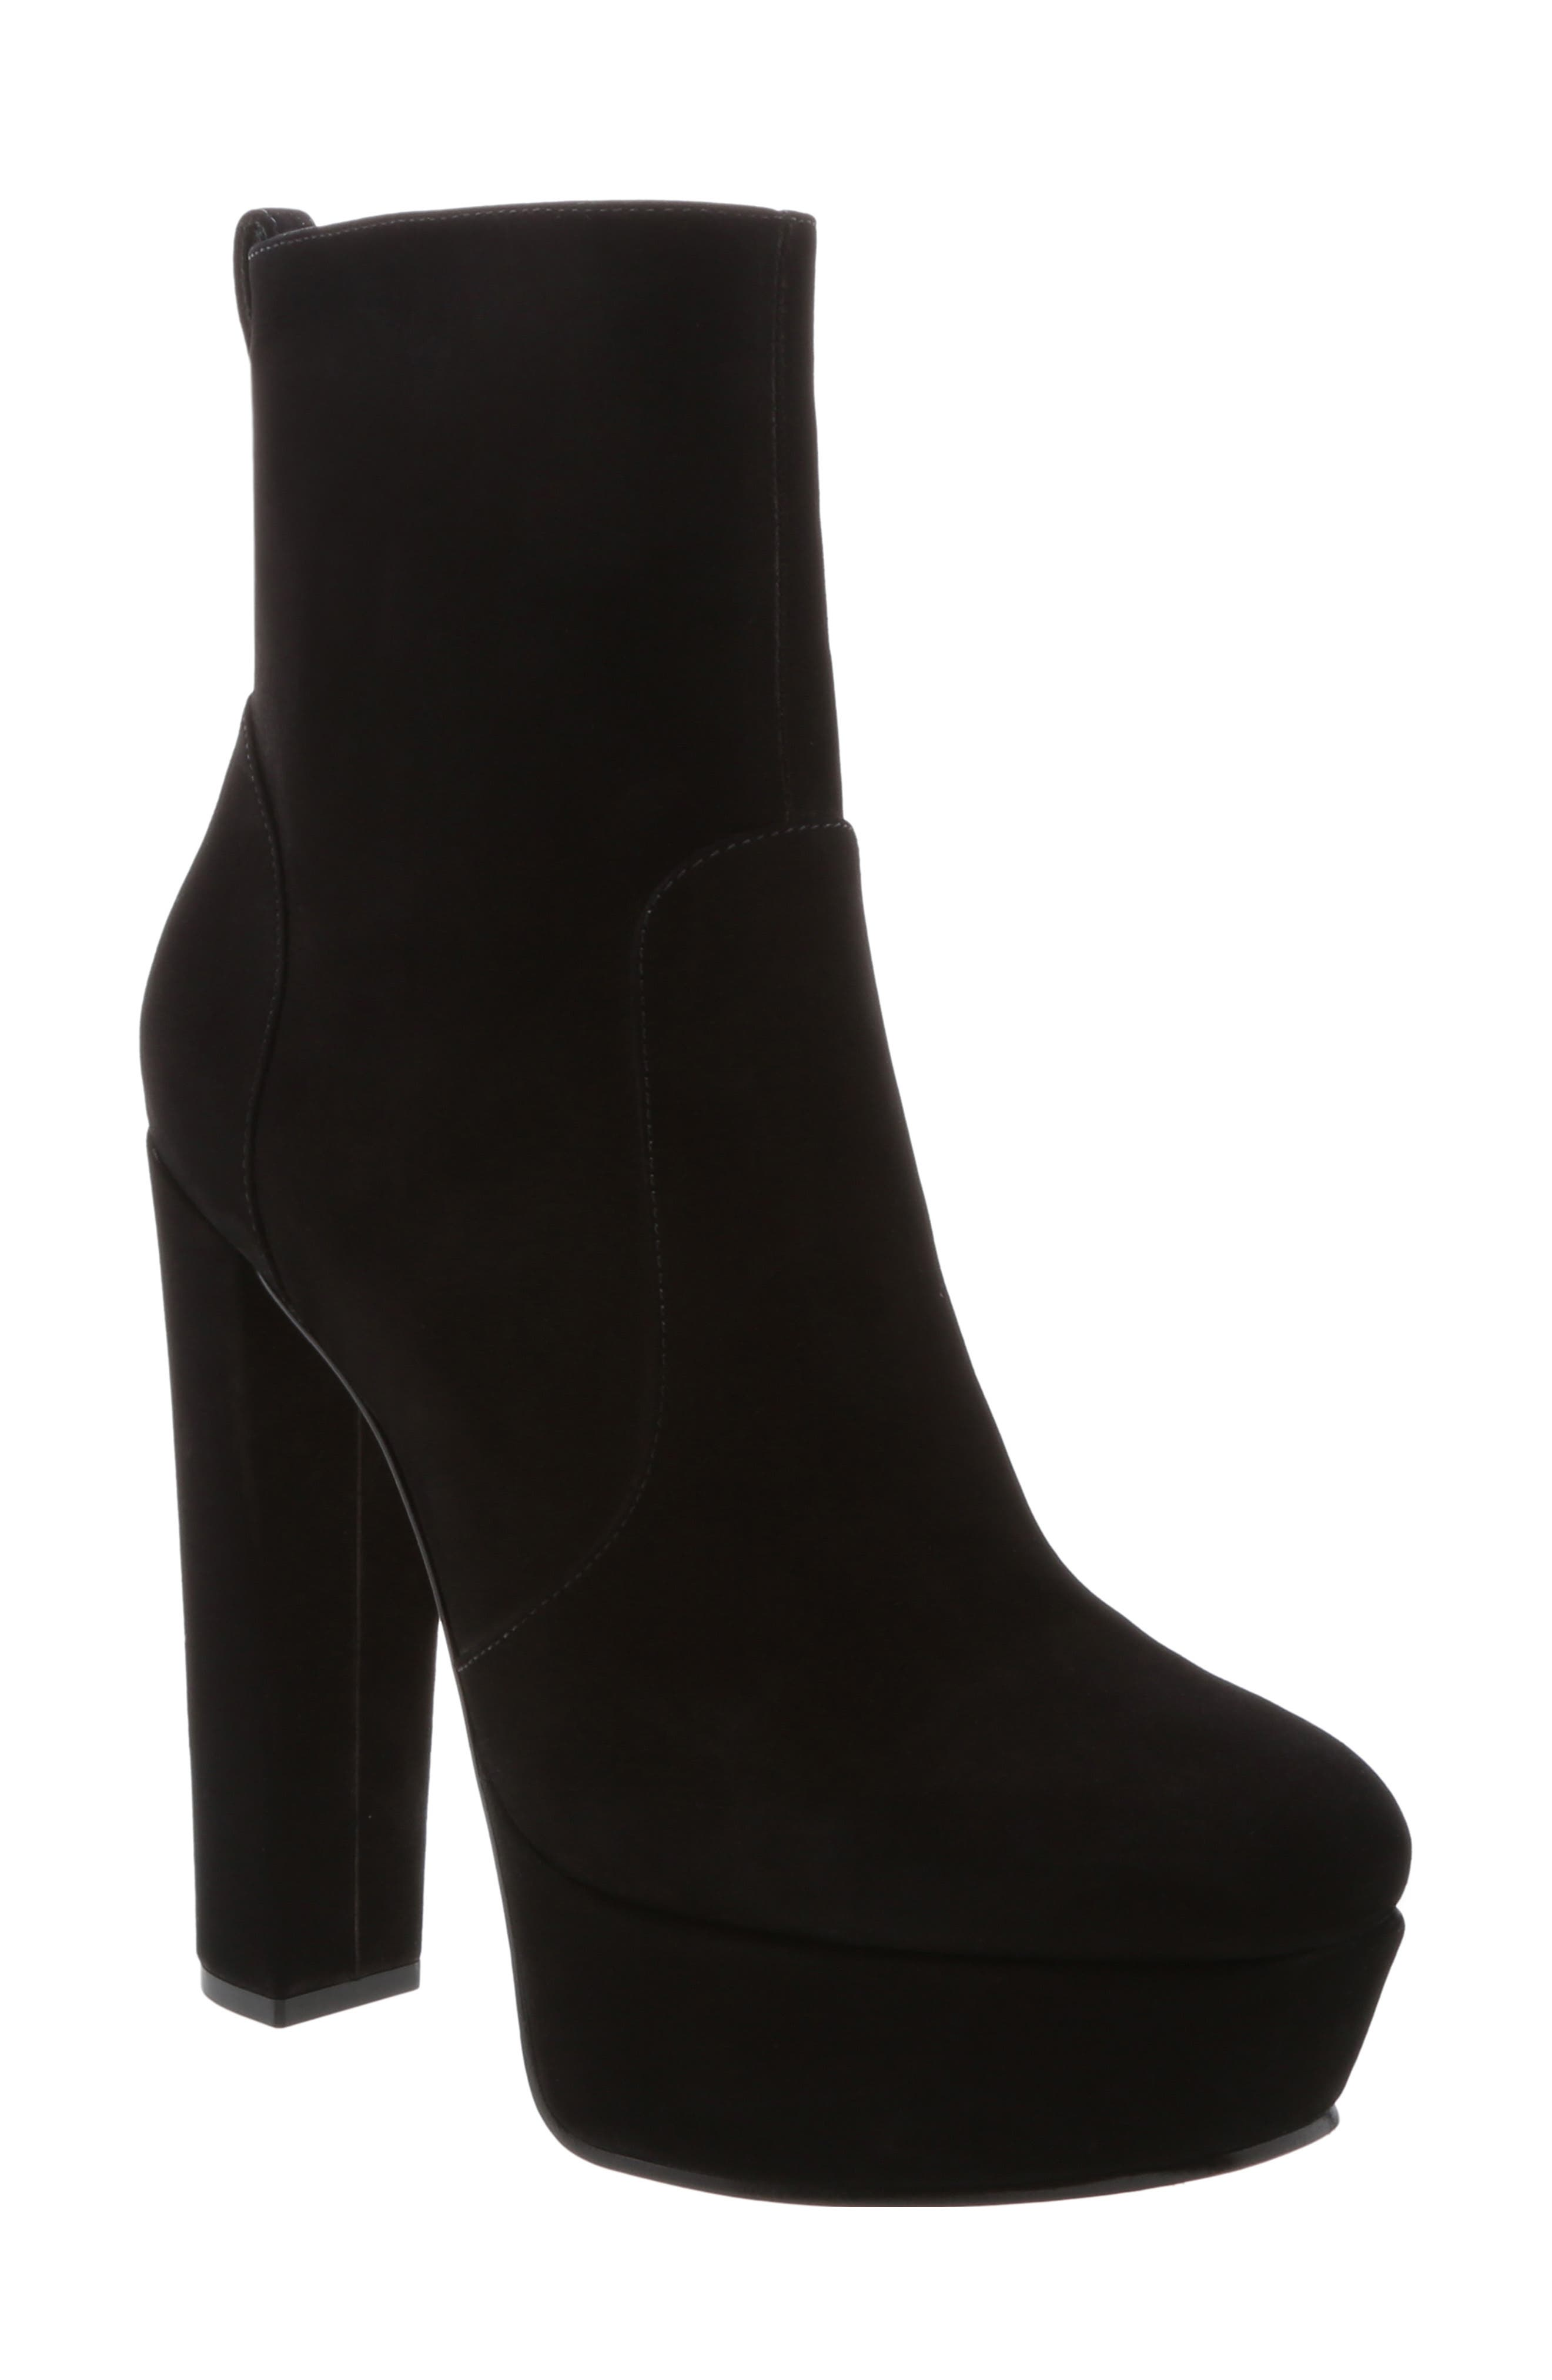 July Platform Bootie,                             Main thumbnail 1, color,                             BLACK NUBUCK LEATHER